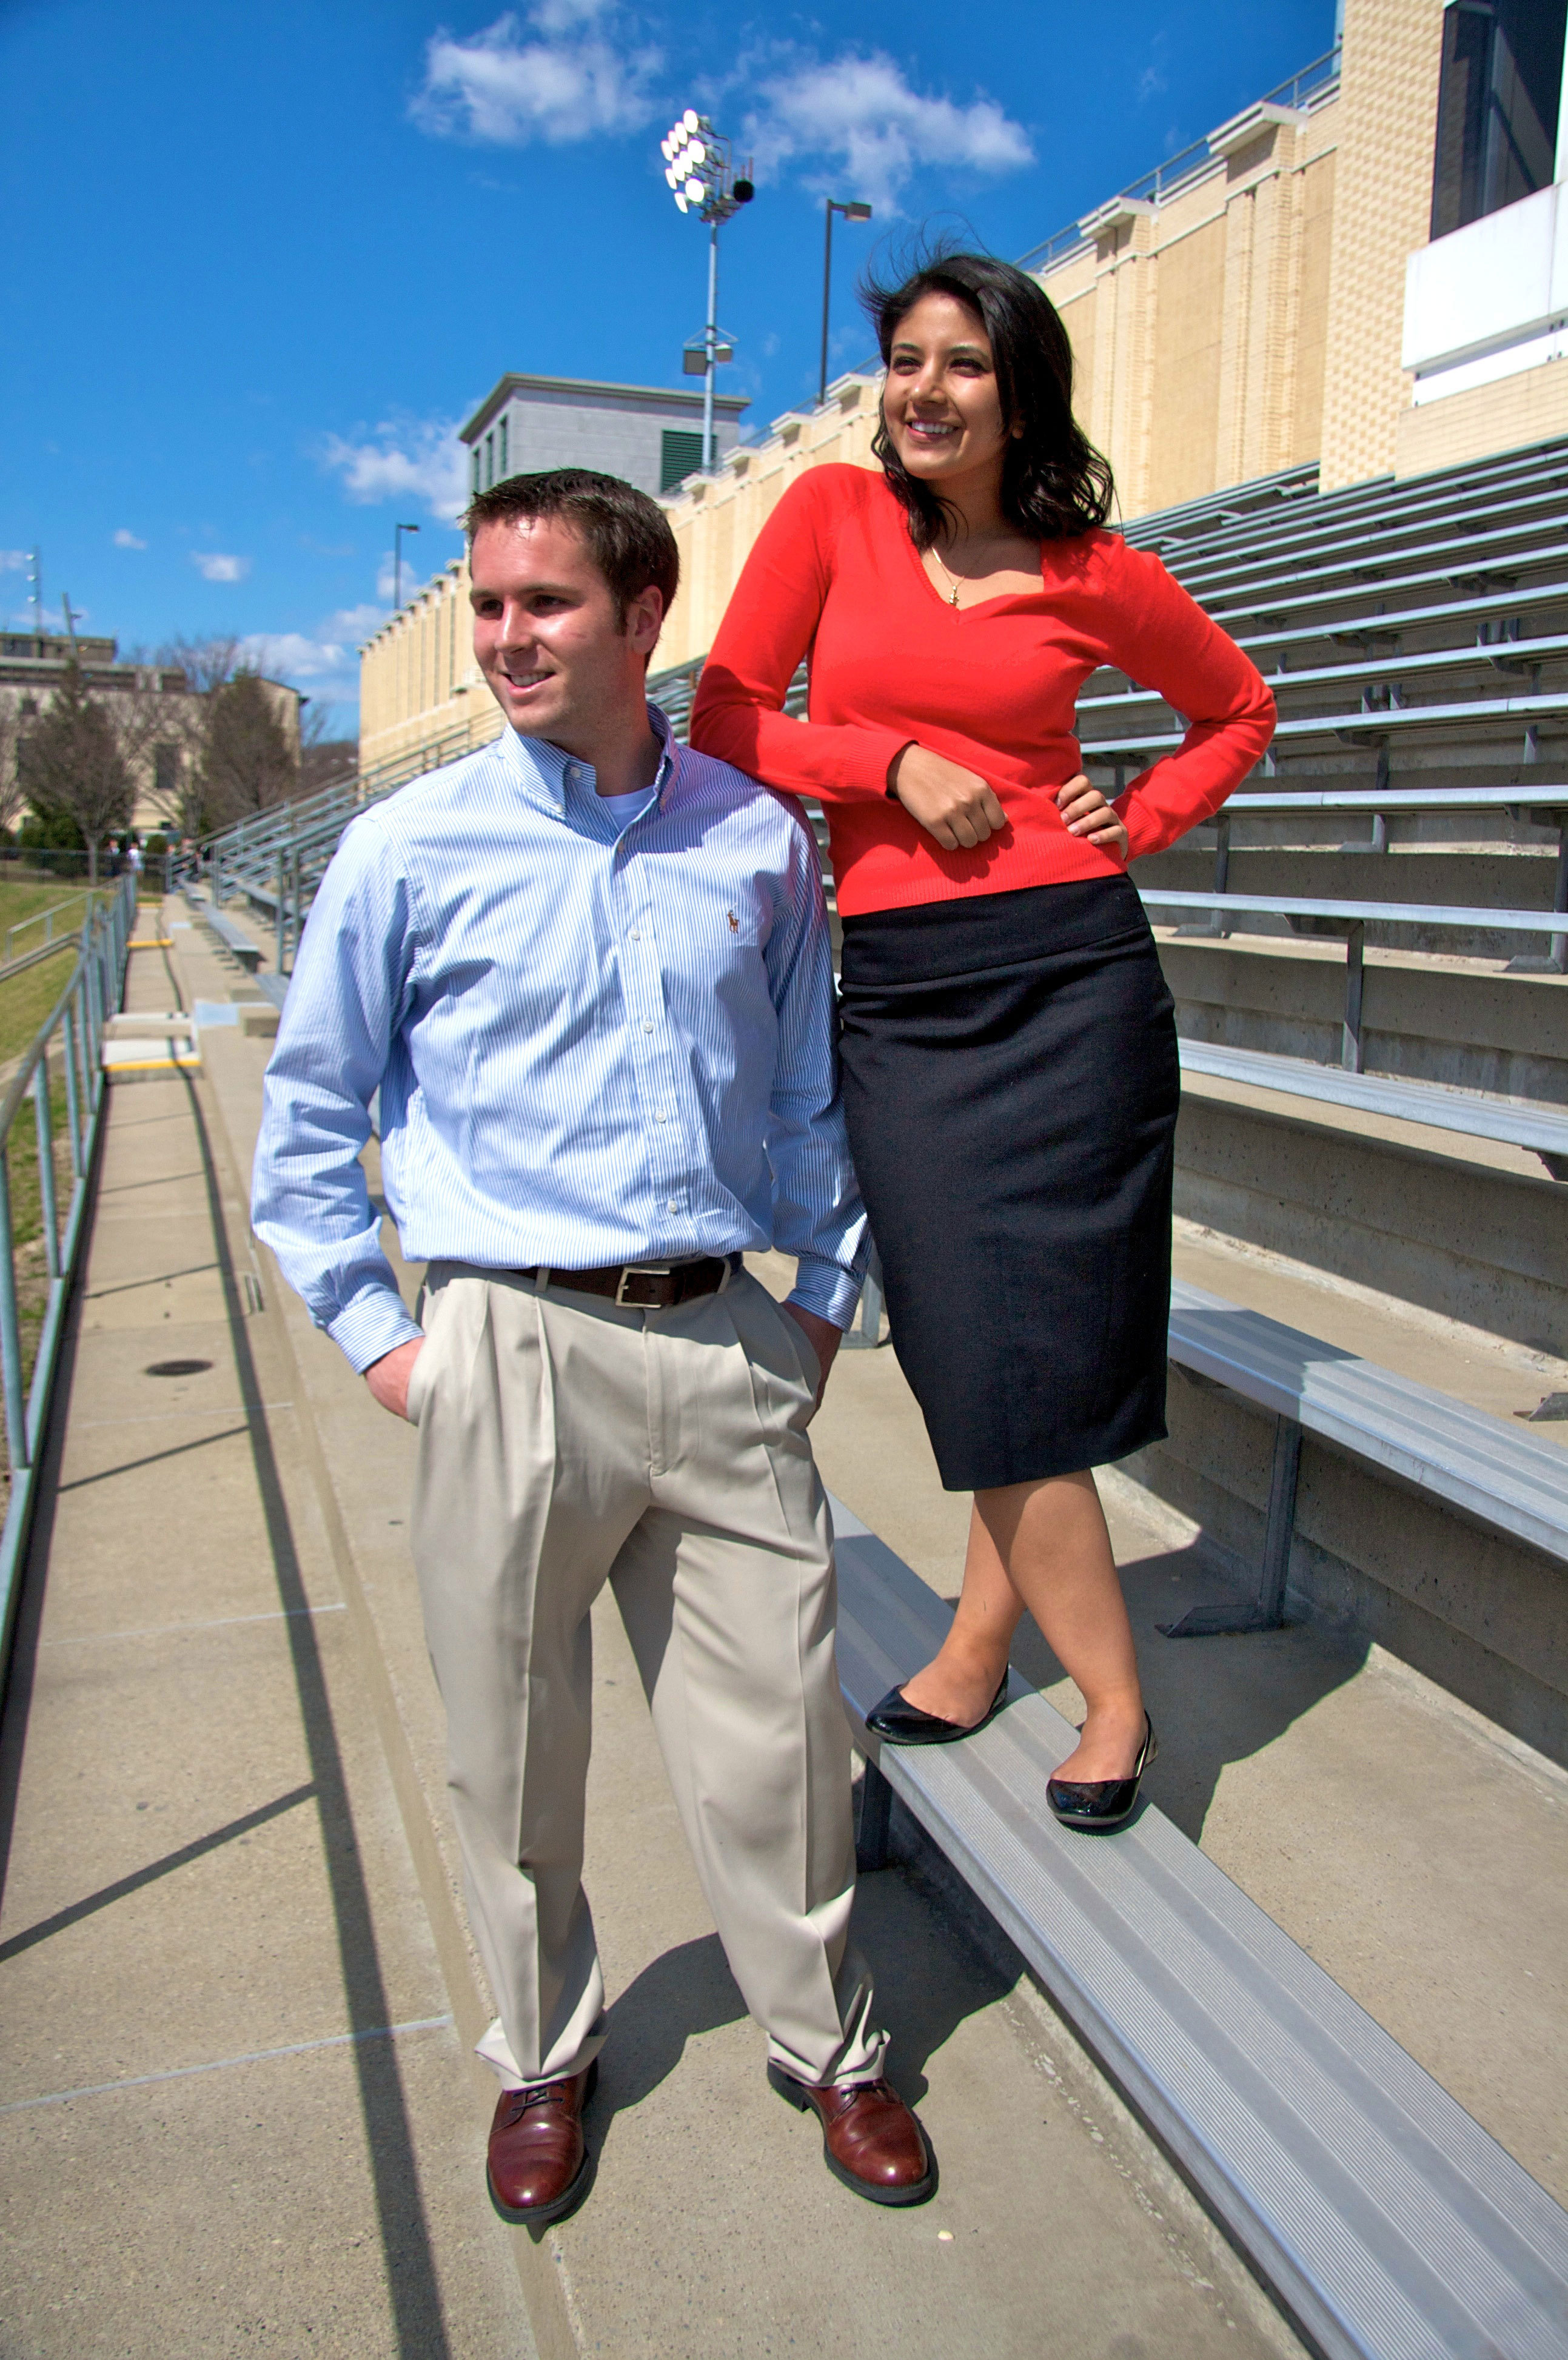 Sarah Sheikh and Jonathan Hall are running for student body president and vice president. (credit: Joshua Debner/Photo Staff)